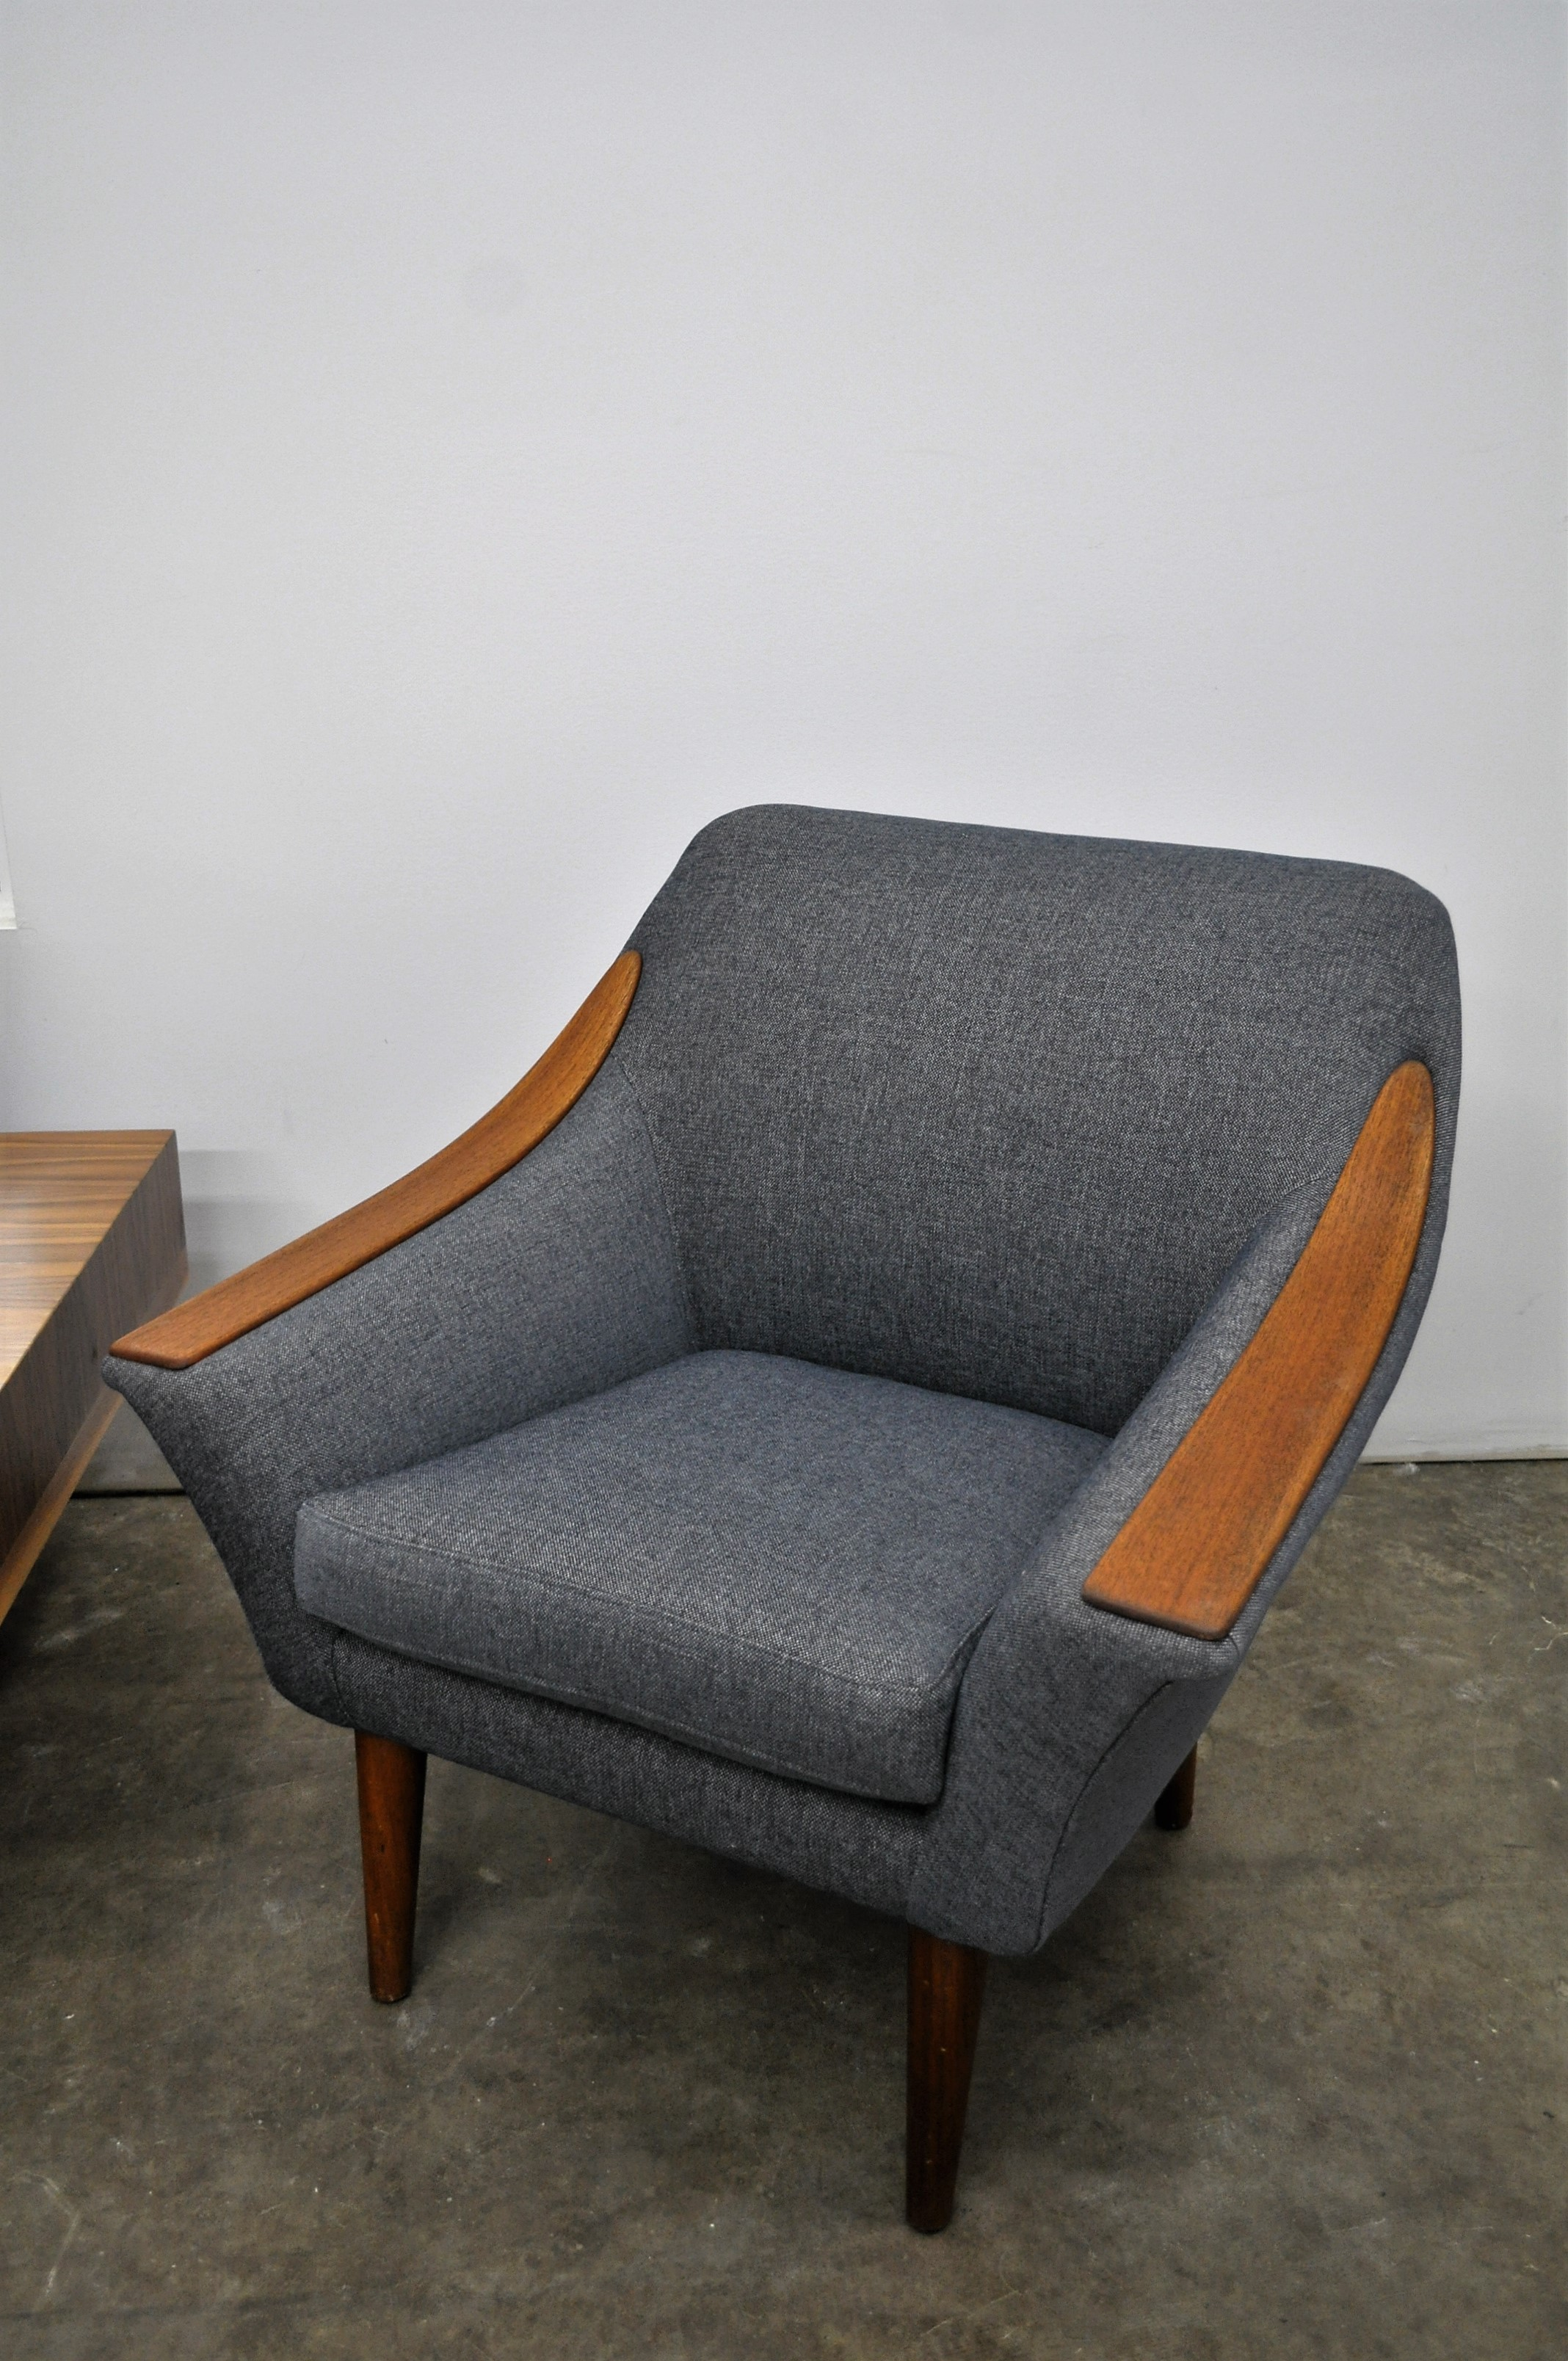 Mid Century Modern restored armchair, with wood panel arms and topstitch detail.